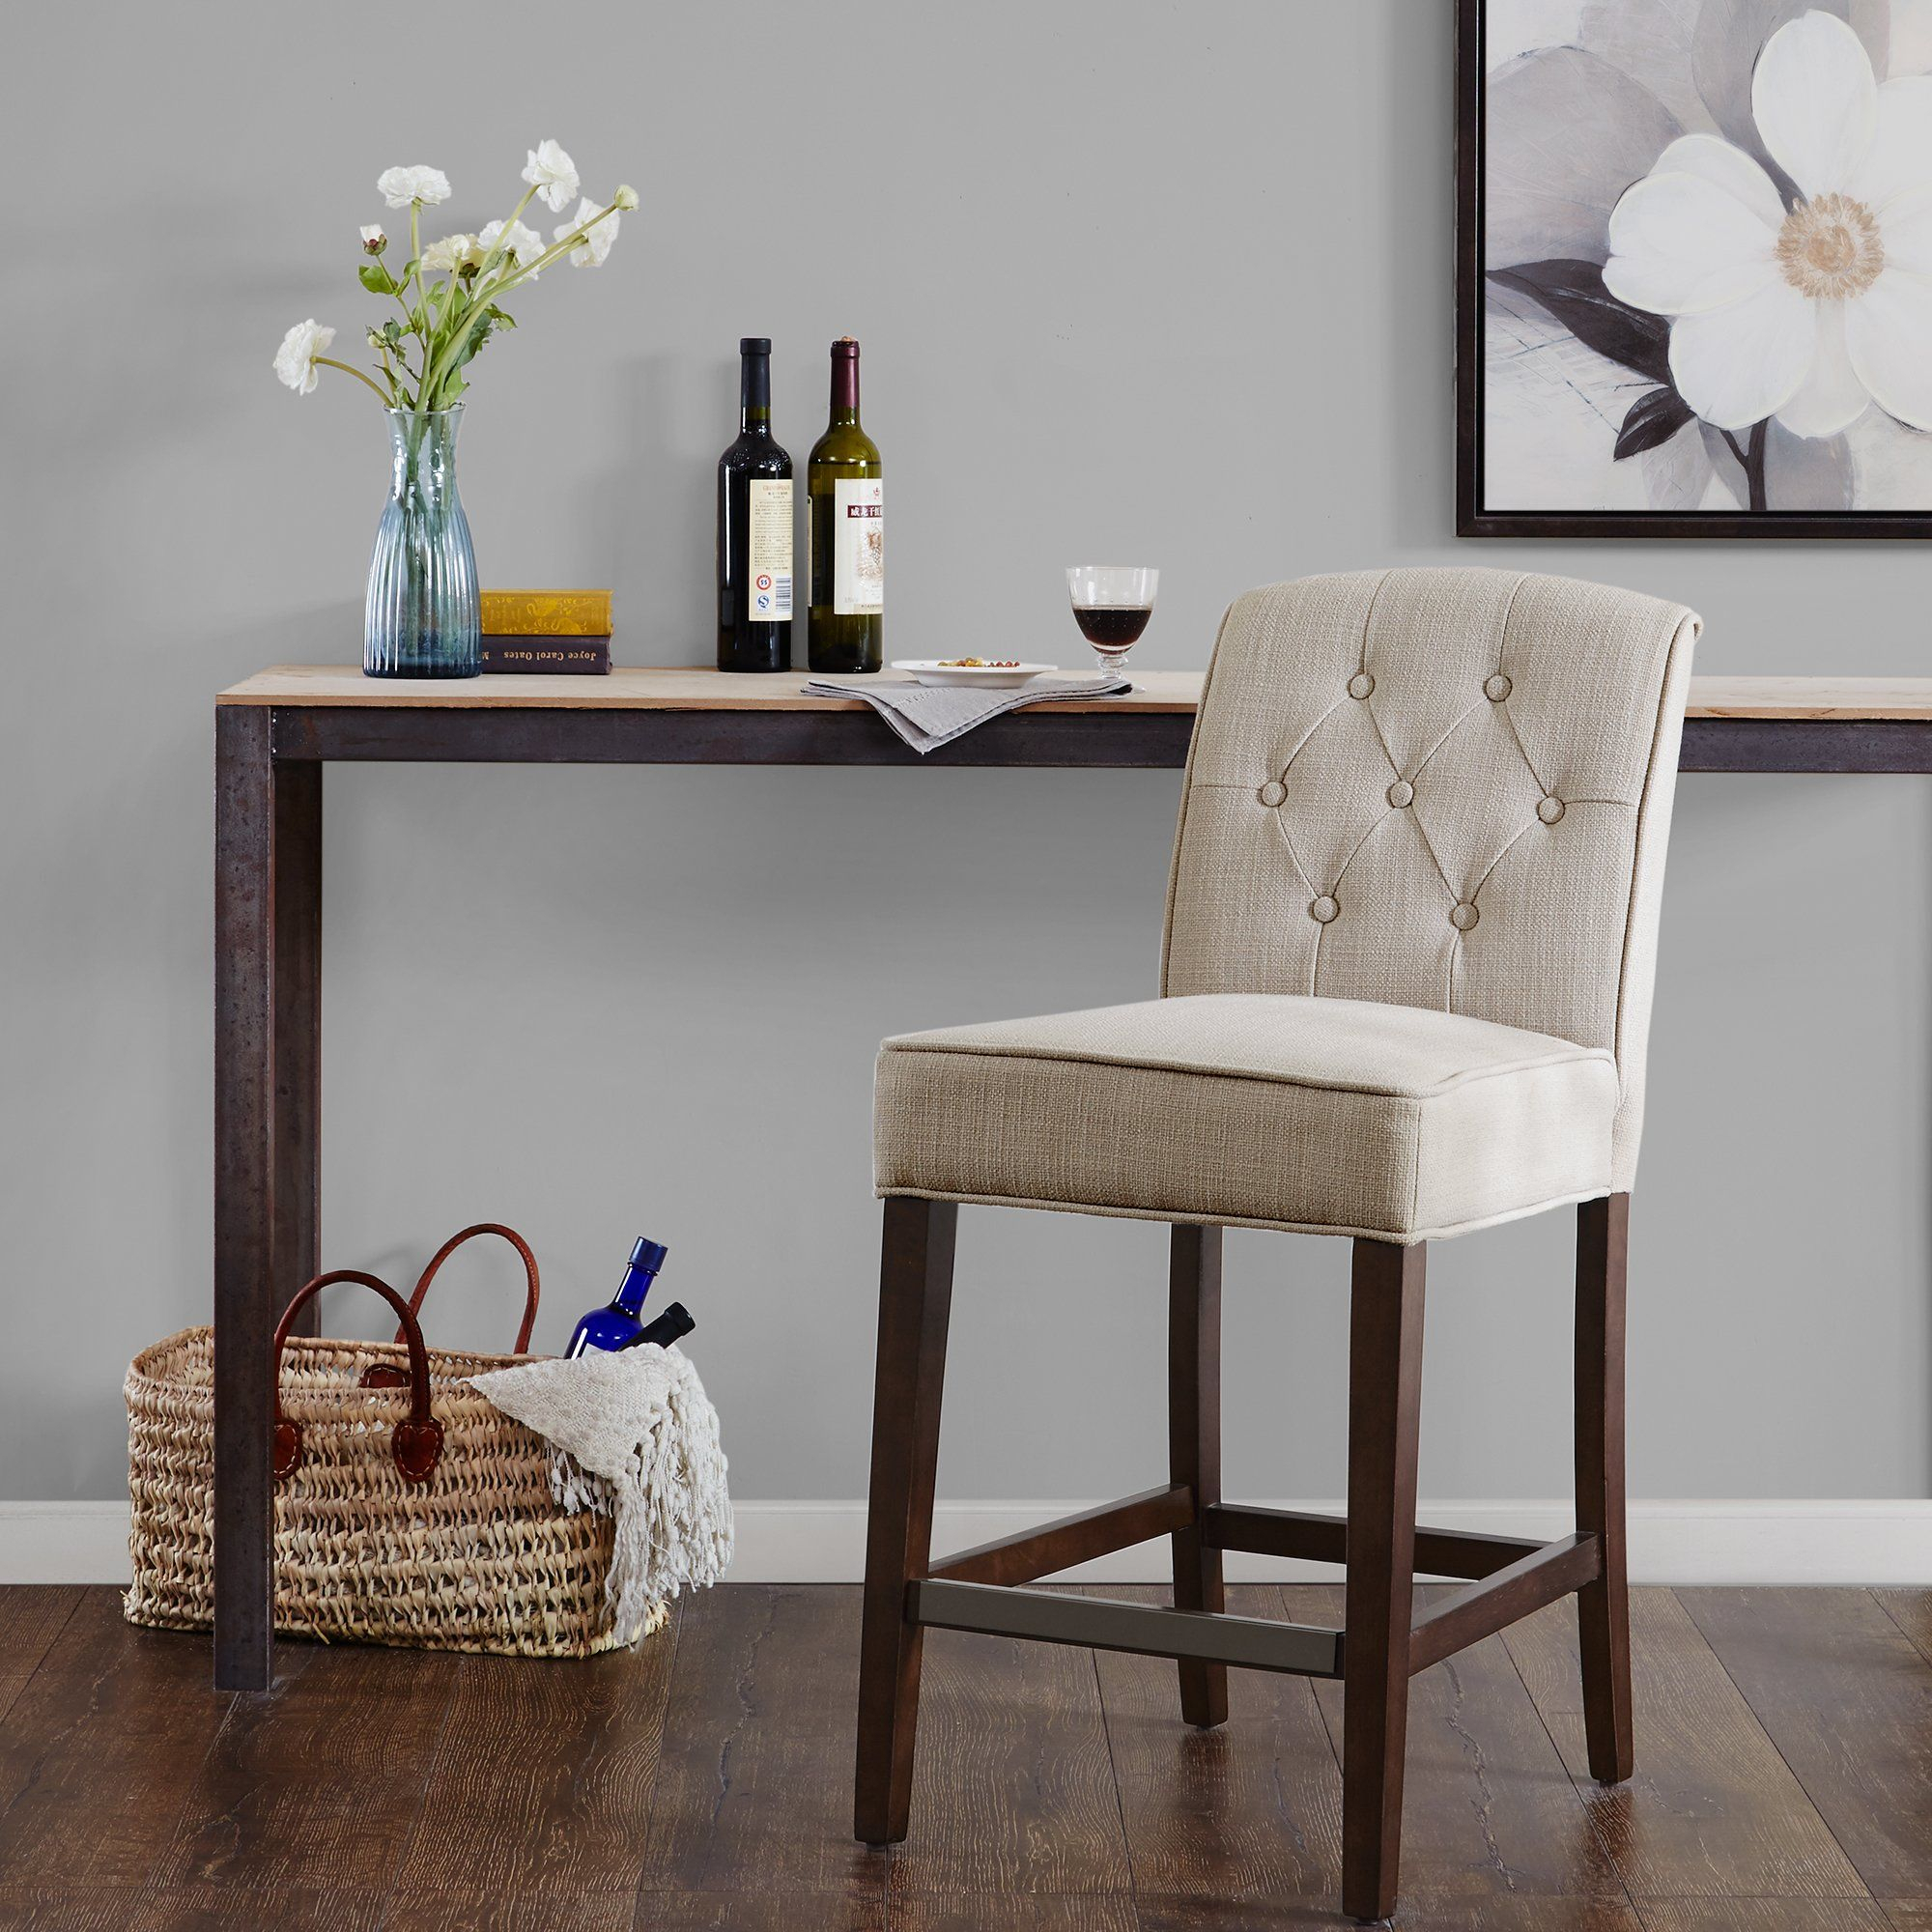 """Lewin 25"""" Bar Stool   Counter Stools, Bar Stools, Counter Inside Best And Newest Lewin Dining Tables (View 11 of 15)"""